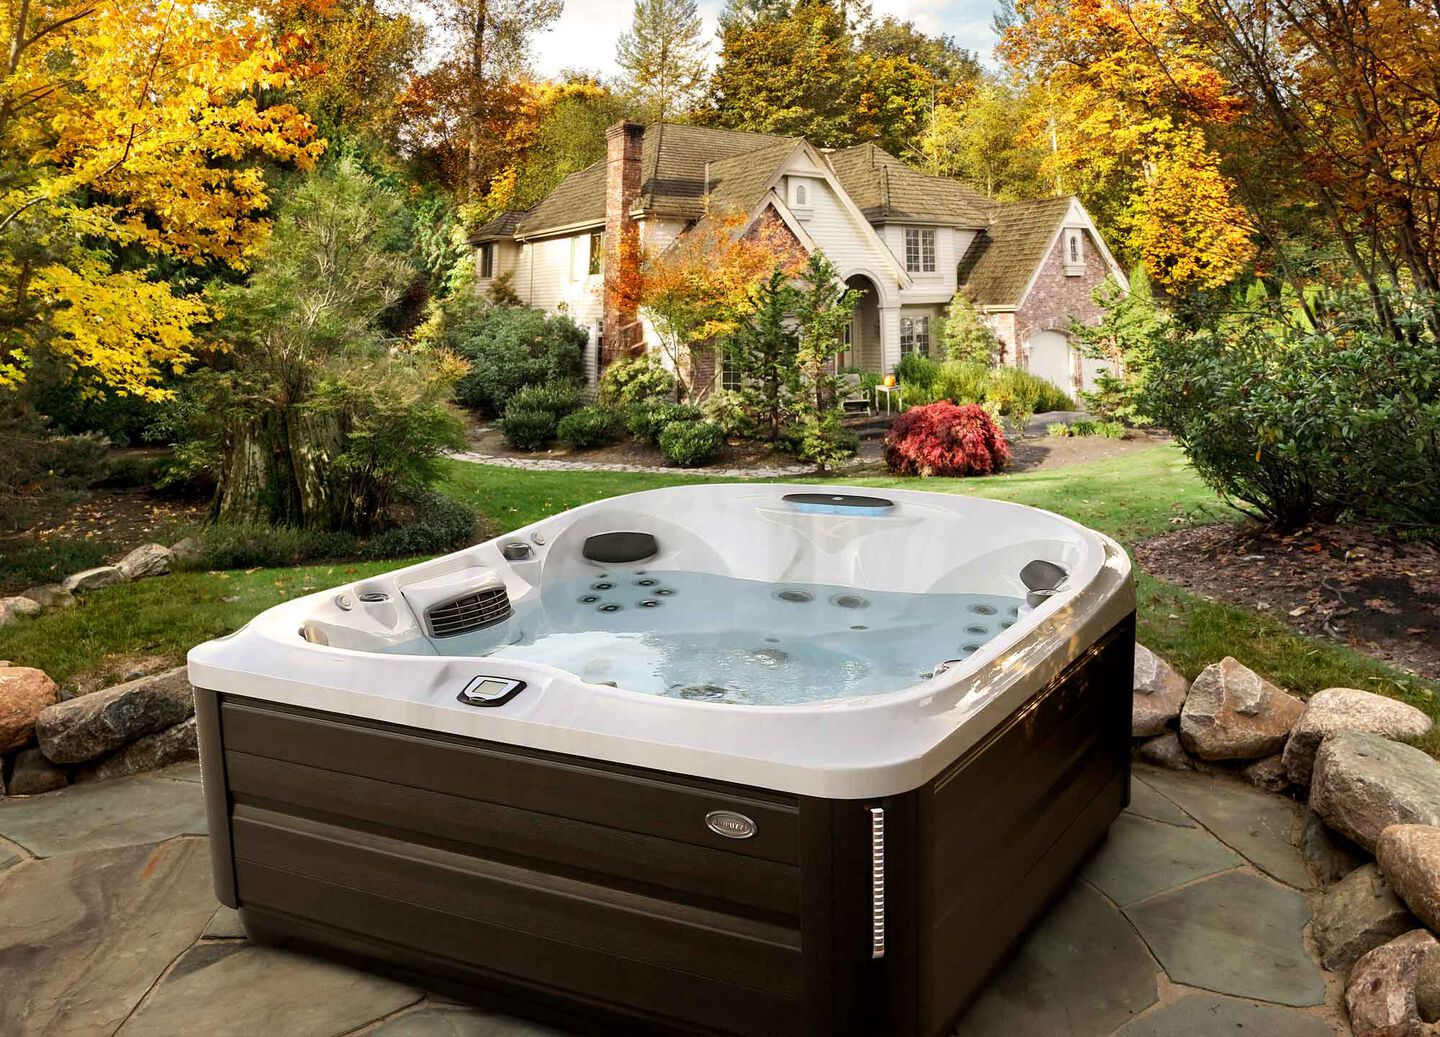 Inspire Wellness in a J-400 hot tub